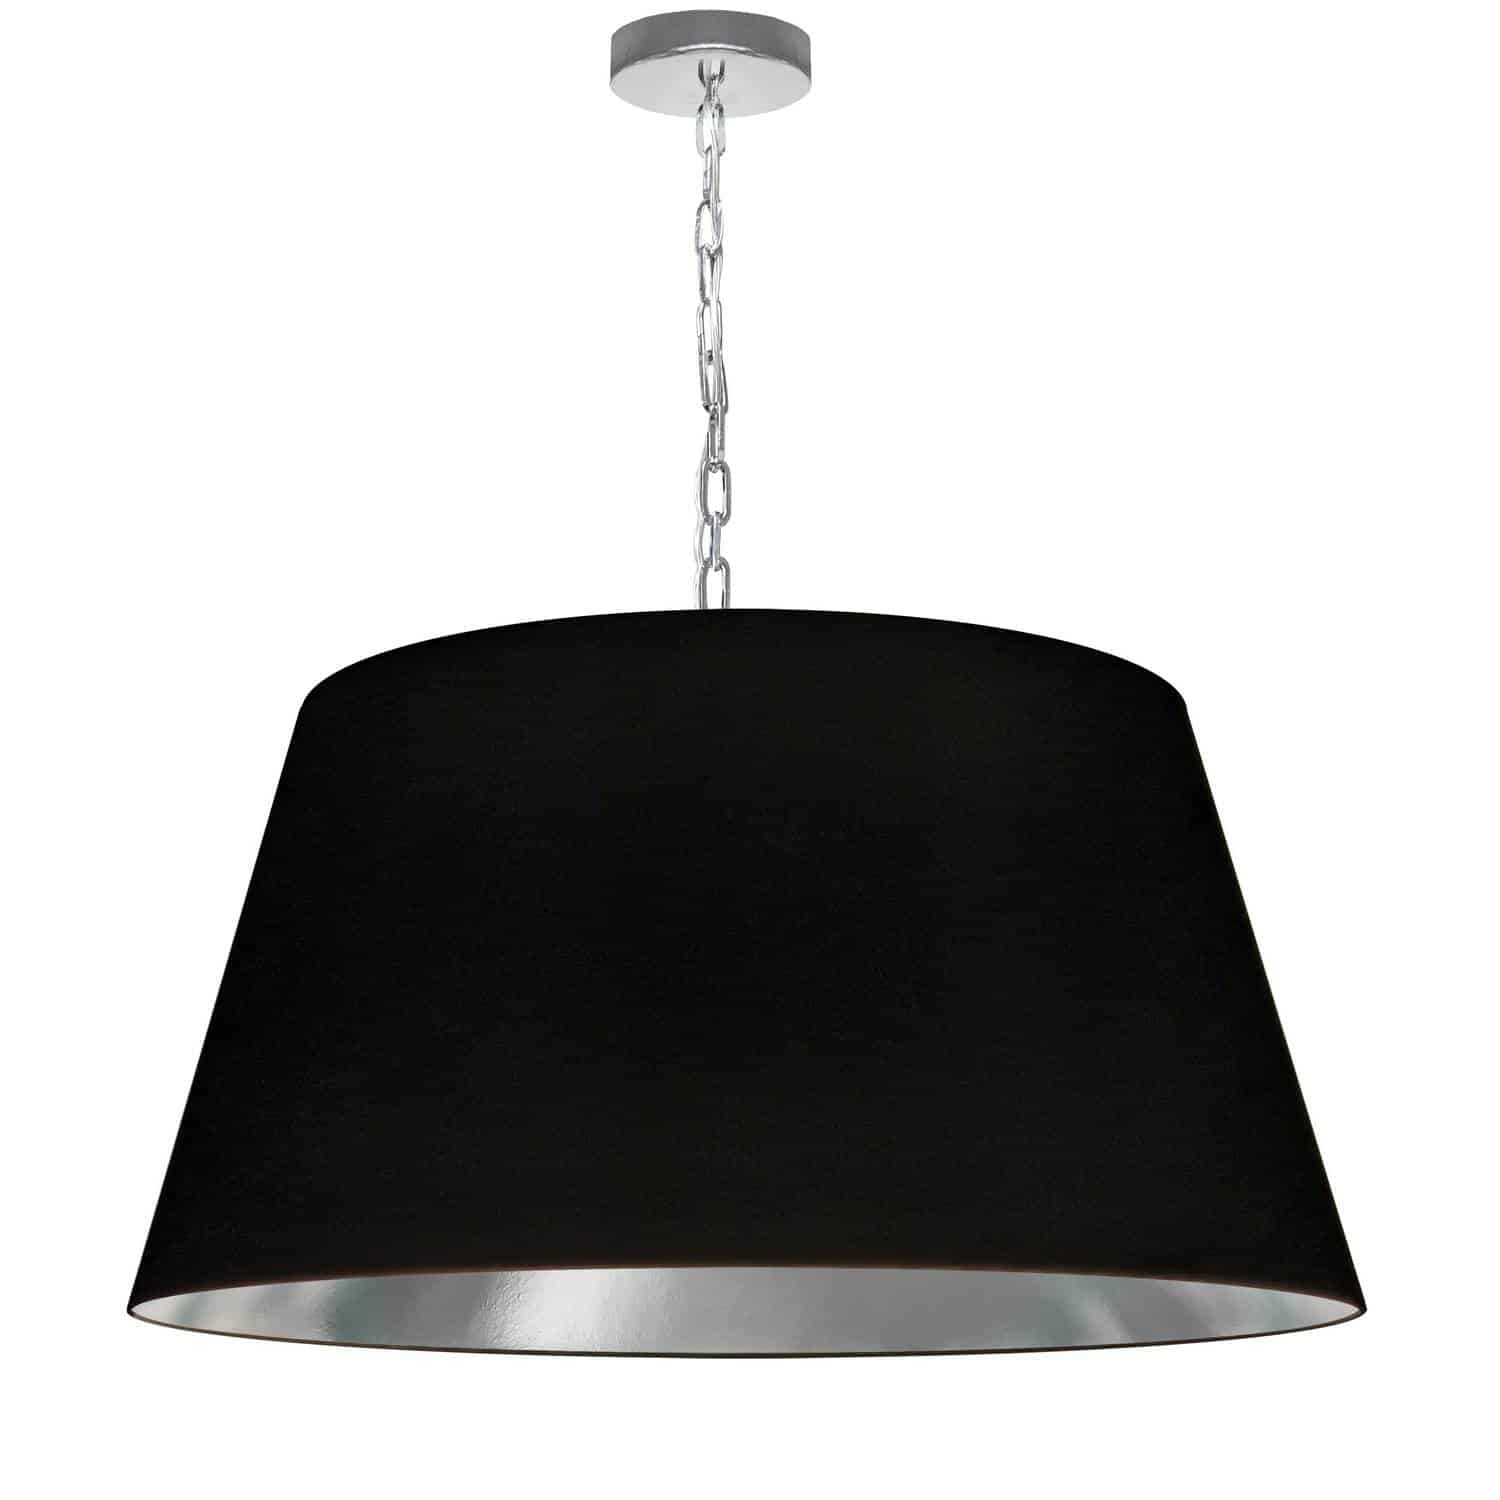 1 Light Brynn Large Pendant, Black/Silver Shade, Polished Chrome